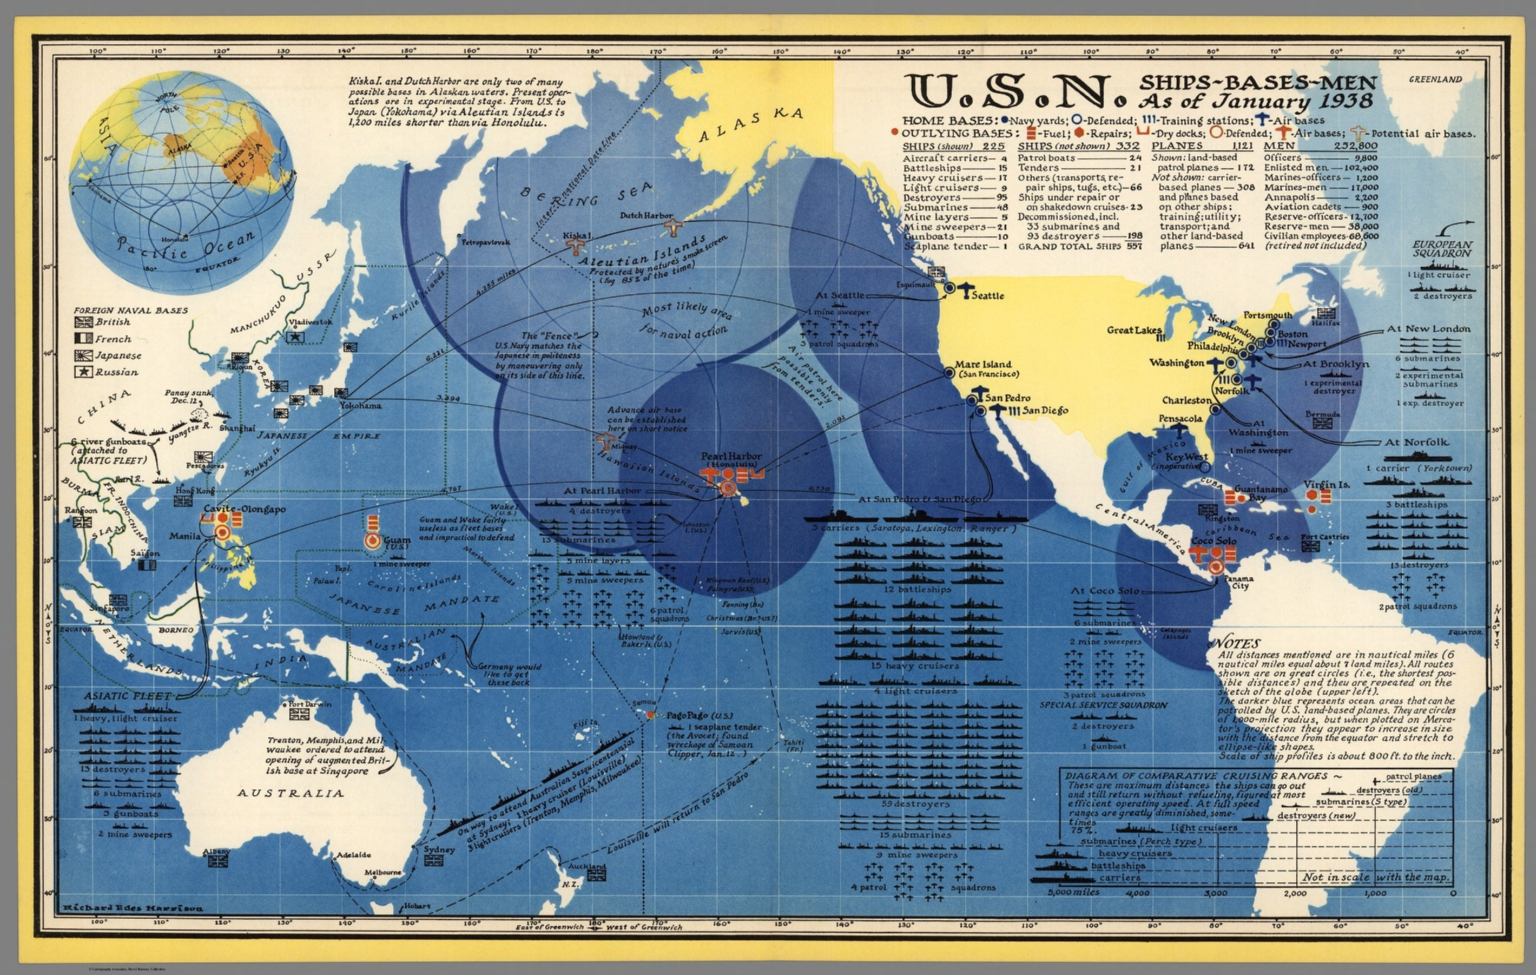 U S Navy Ships Bases Men As Of January 1938